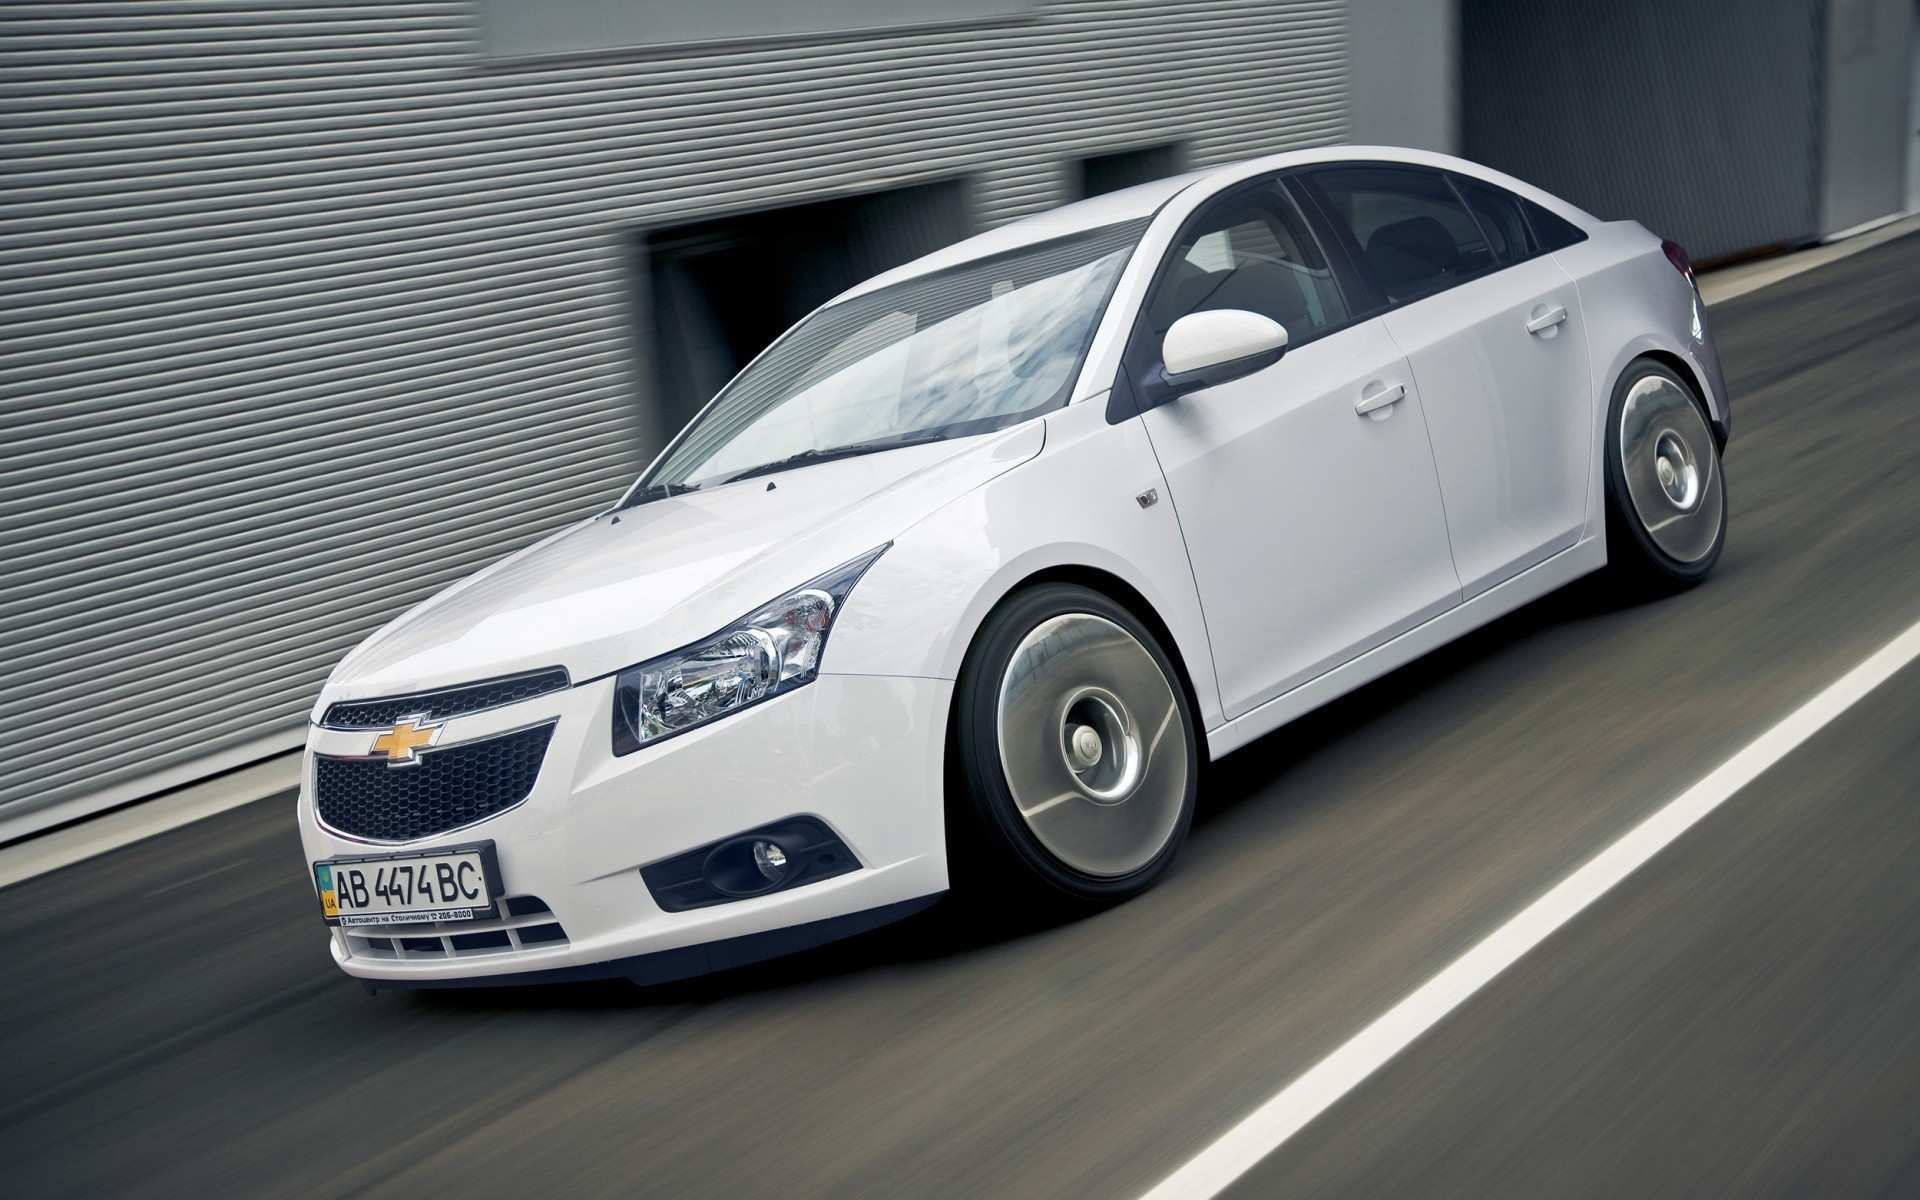 29 Concept of Chevy Cruze Wallpapers Review by Chevy Cruze Wallpapers